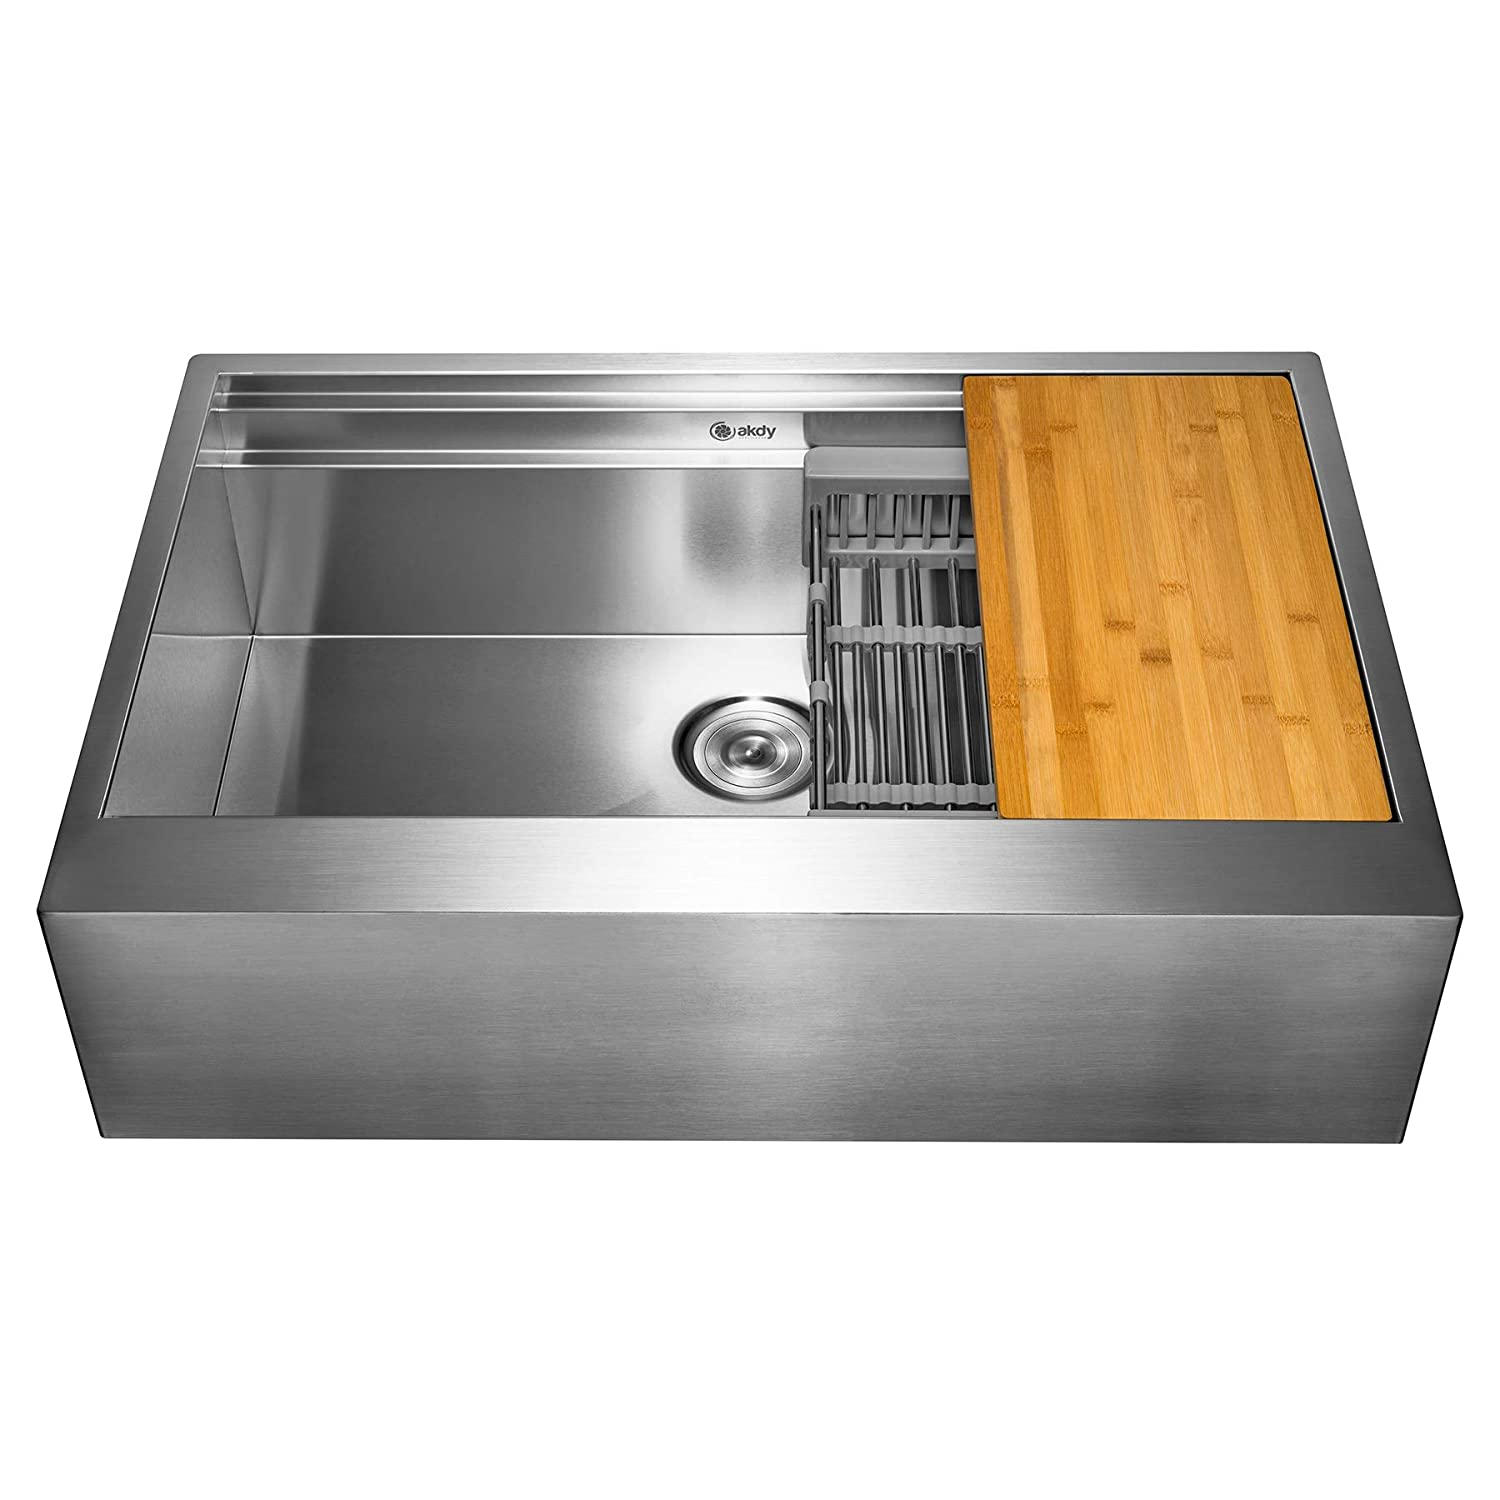 AKDY 30-Inch 30 x20 x9 Apron Farmhouse Handmade Stainless Steel Kitchen Sink- Single Bowl Space Saving Kitchen Sink – Kitchen Sink with Drain Strainer Kit Adjustable Tray and Cutting Board